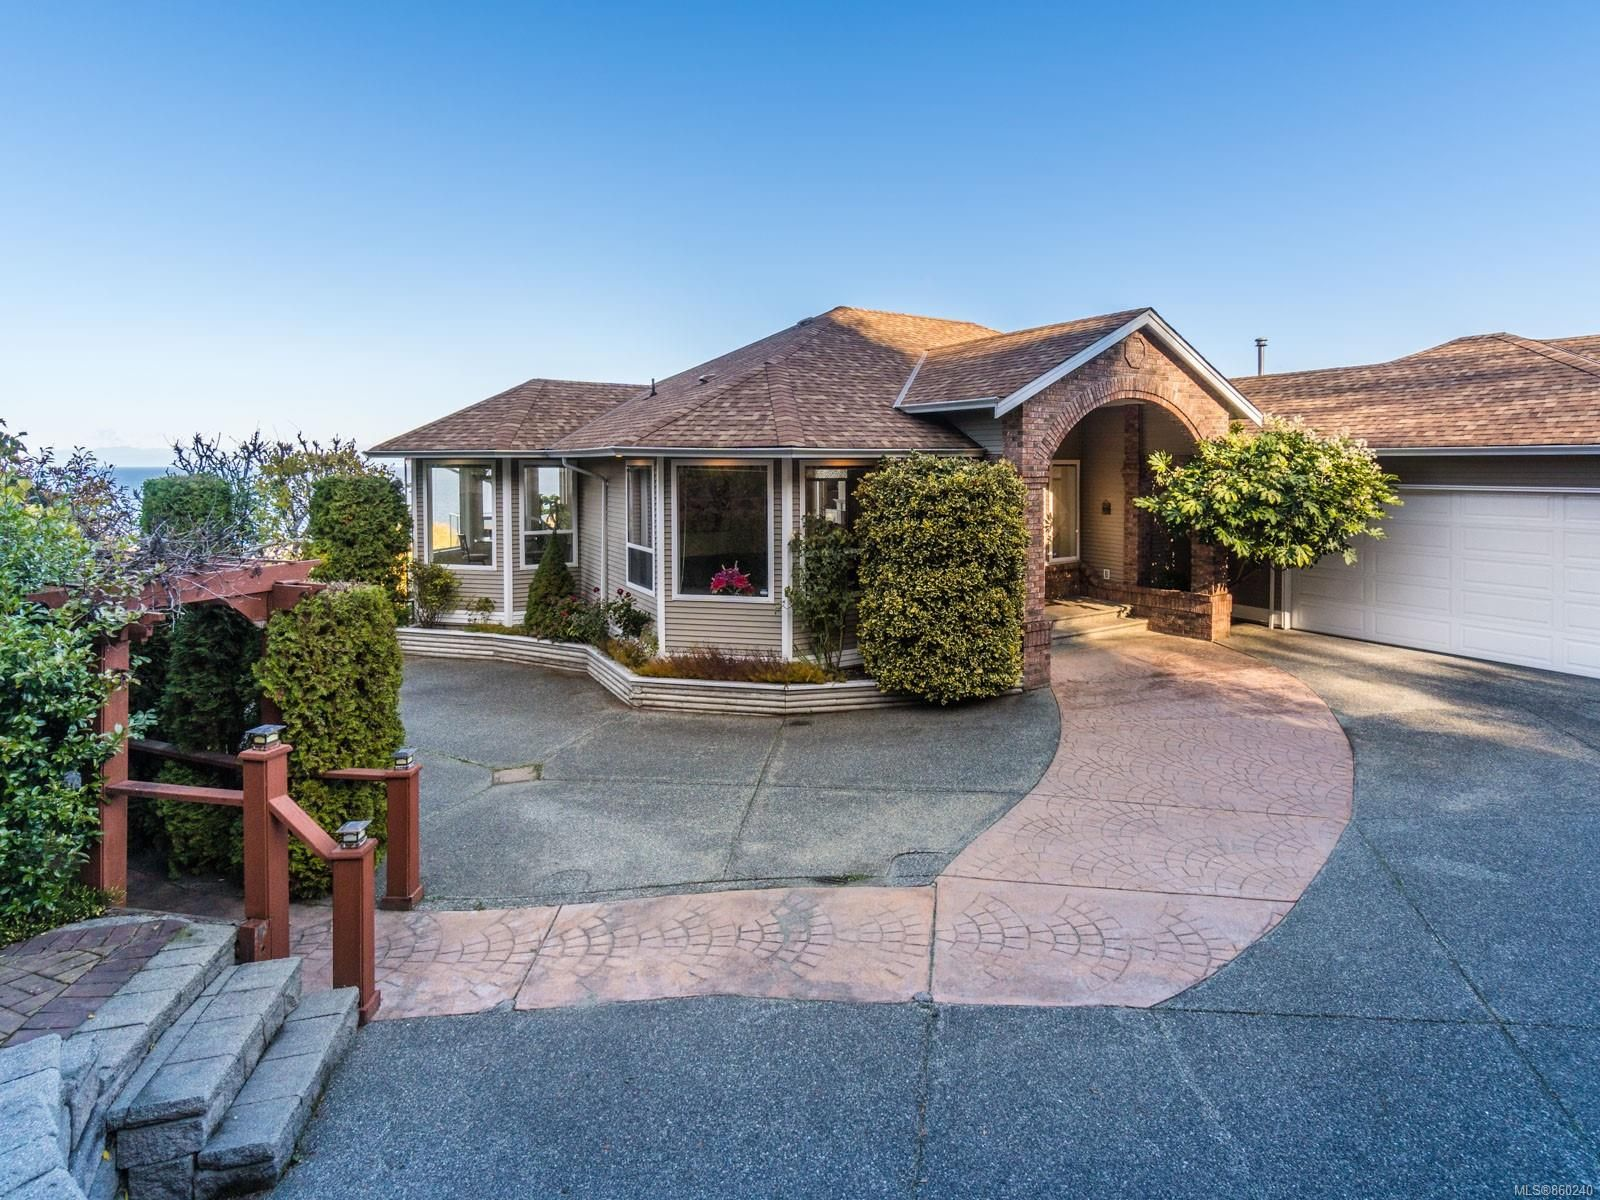 Main Photo: 5242 Laguna Way in : Na North Nanaimo House for sale (Nanaimo)  : MLS®# 860240